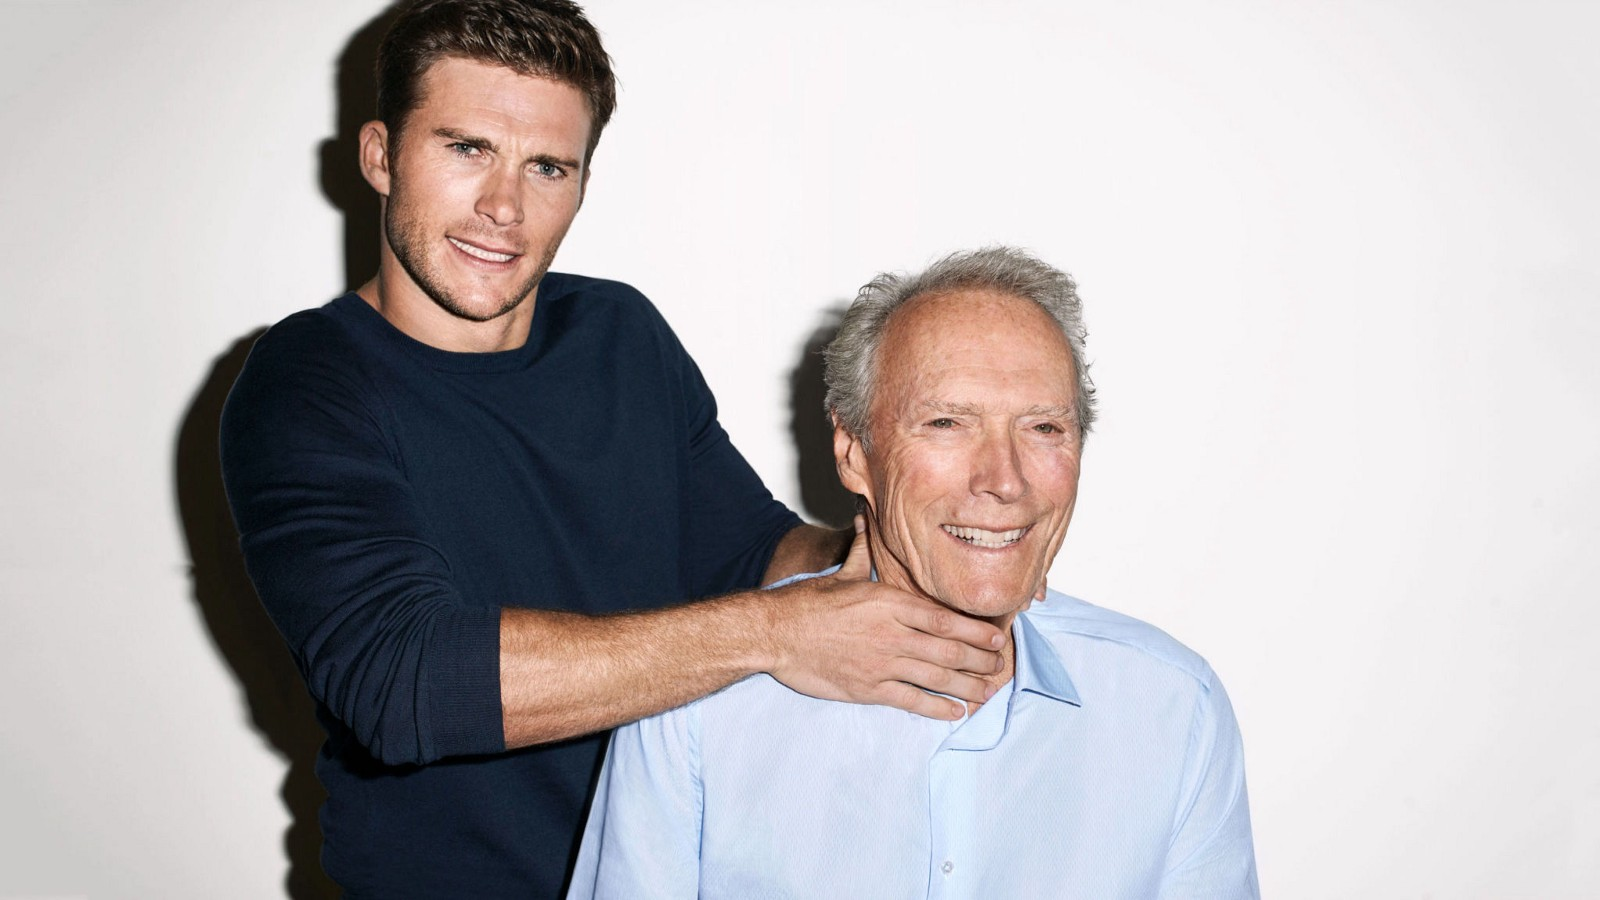 Clint Eastwood applauds Donald Trump's contempt for ...